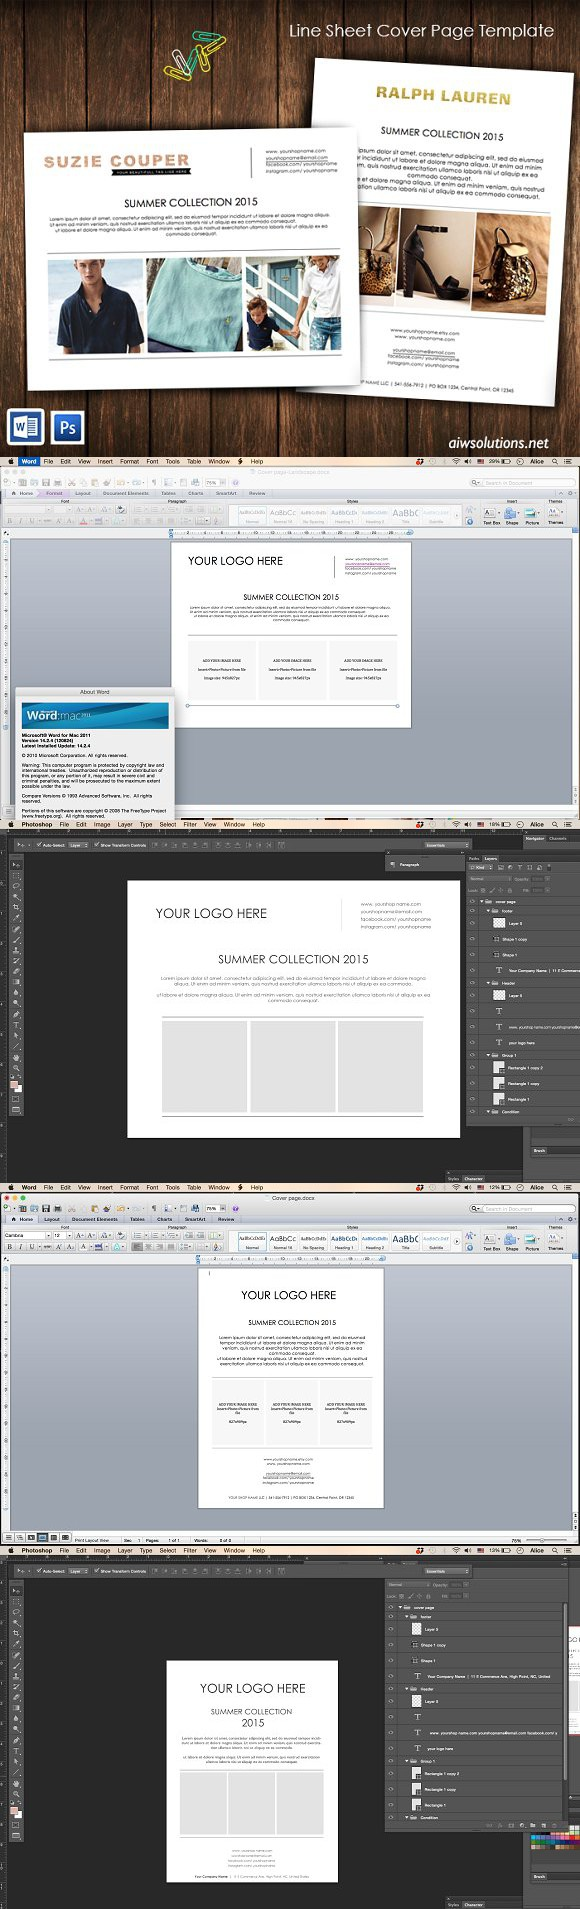 Stationery Templates Line Sheet Cover Page id